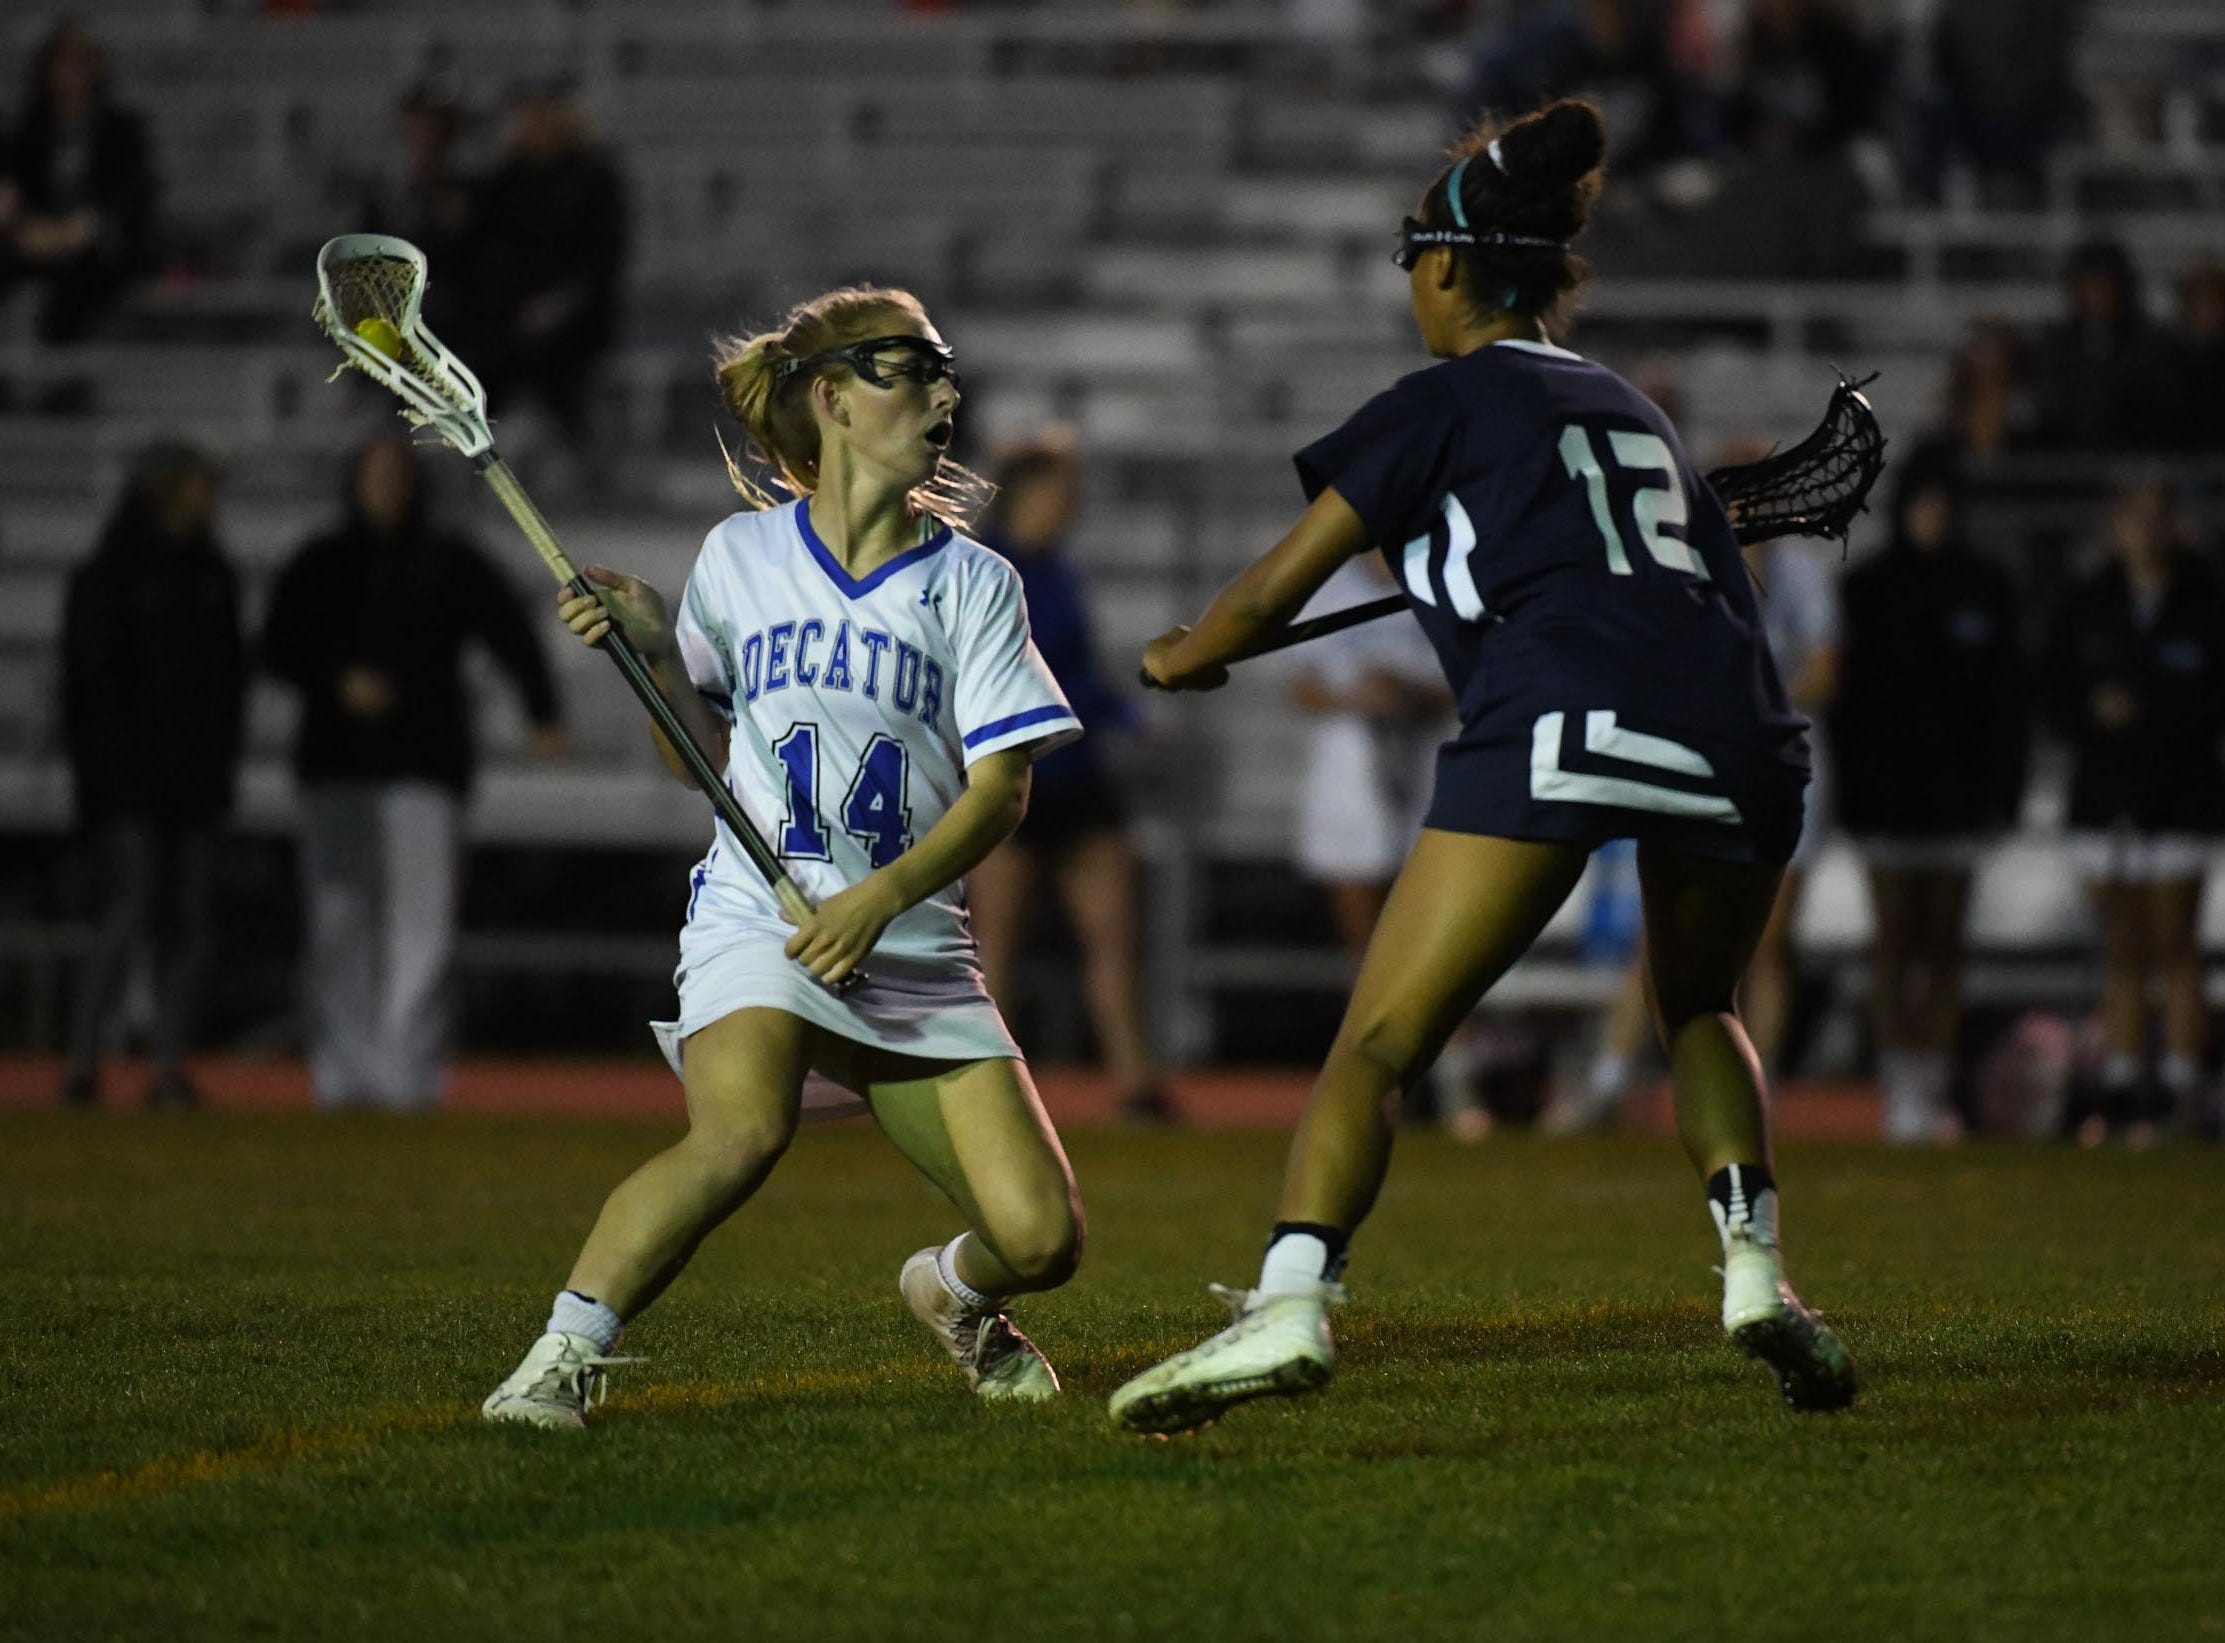 Stephen Decatur's Tori Mueller drives towards the goal against Kent Island during the Bayside Championship on Monday, May 6, 2019 at Wicomico County Stadium in Salisbury, Md.